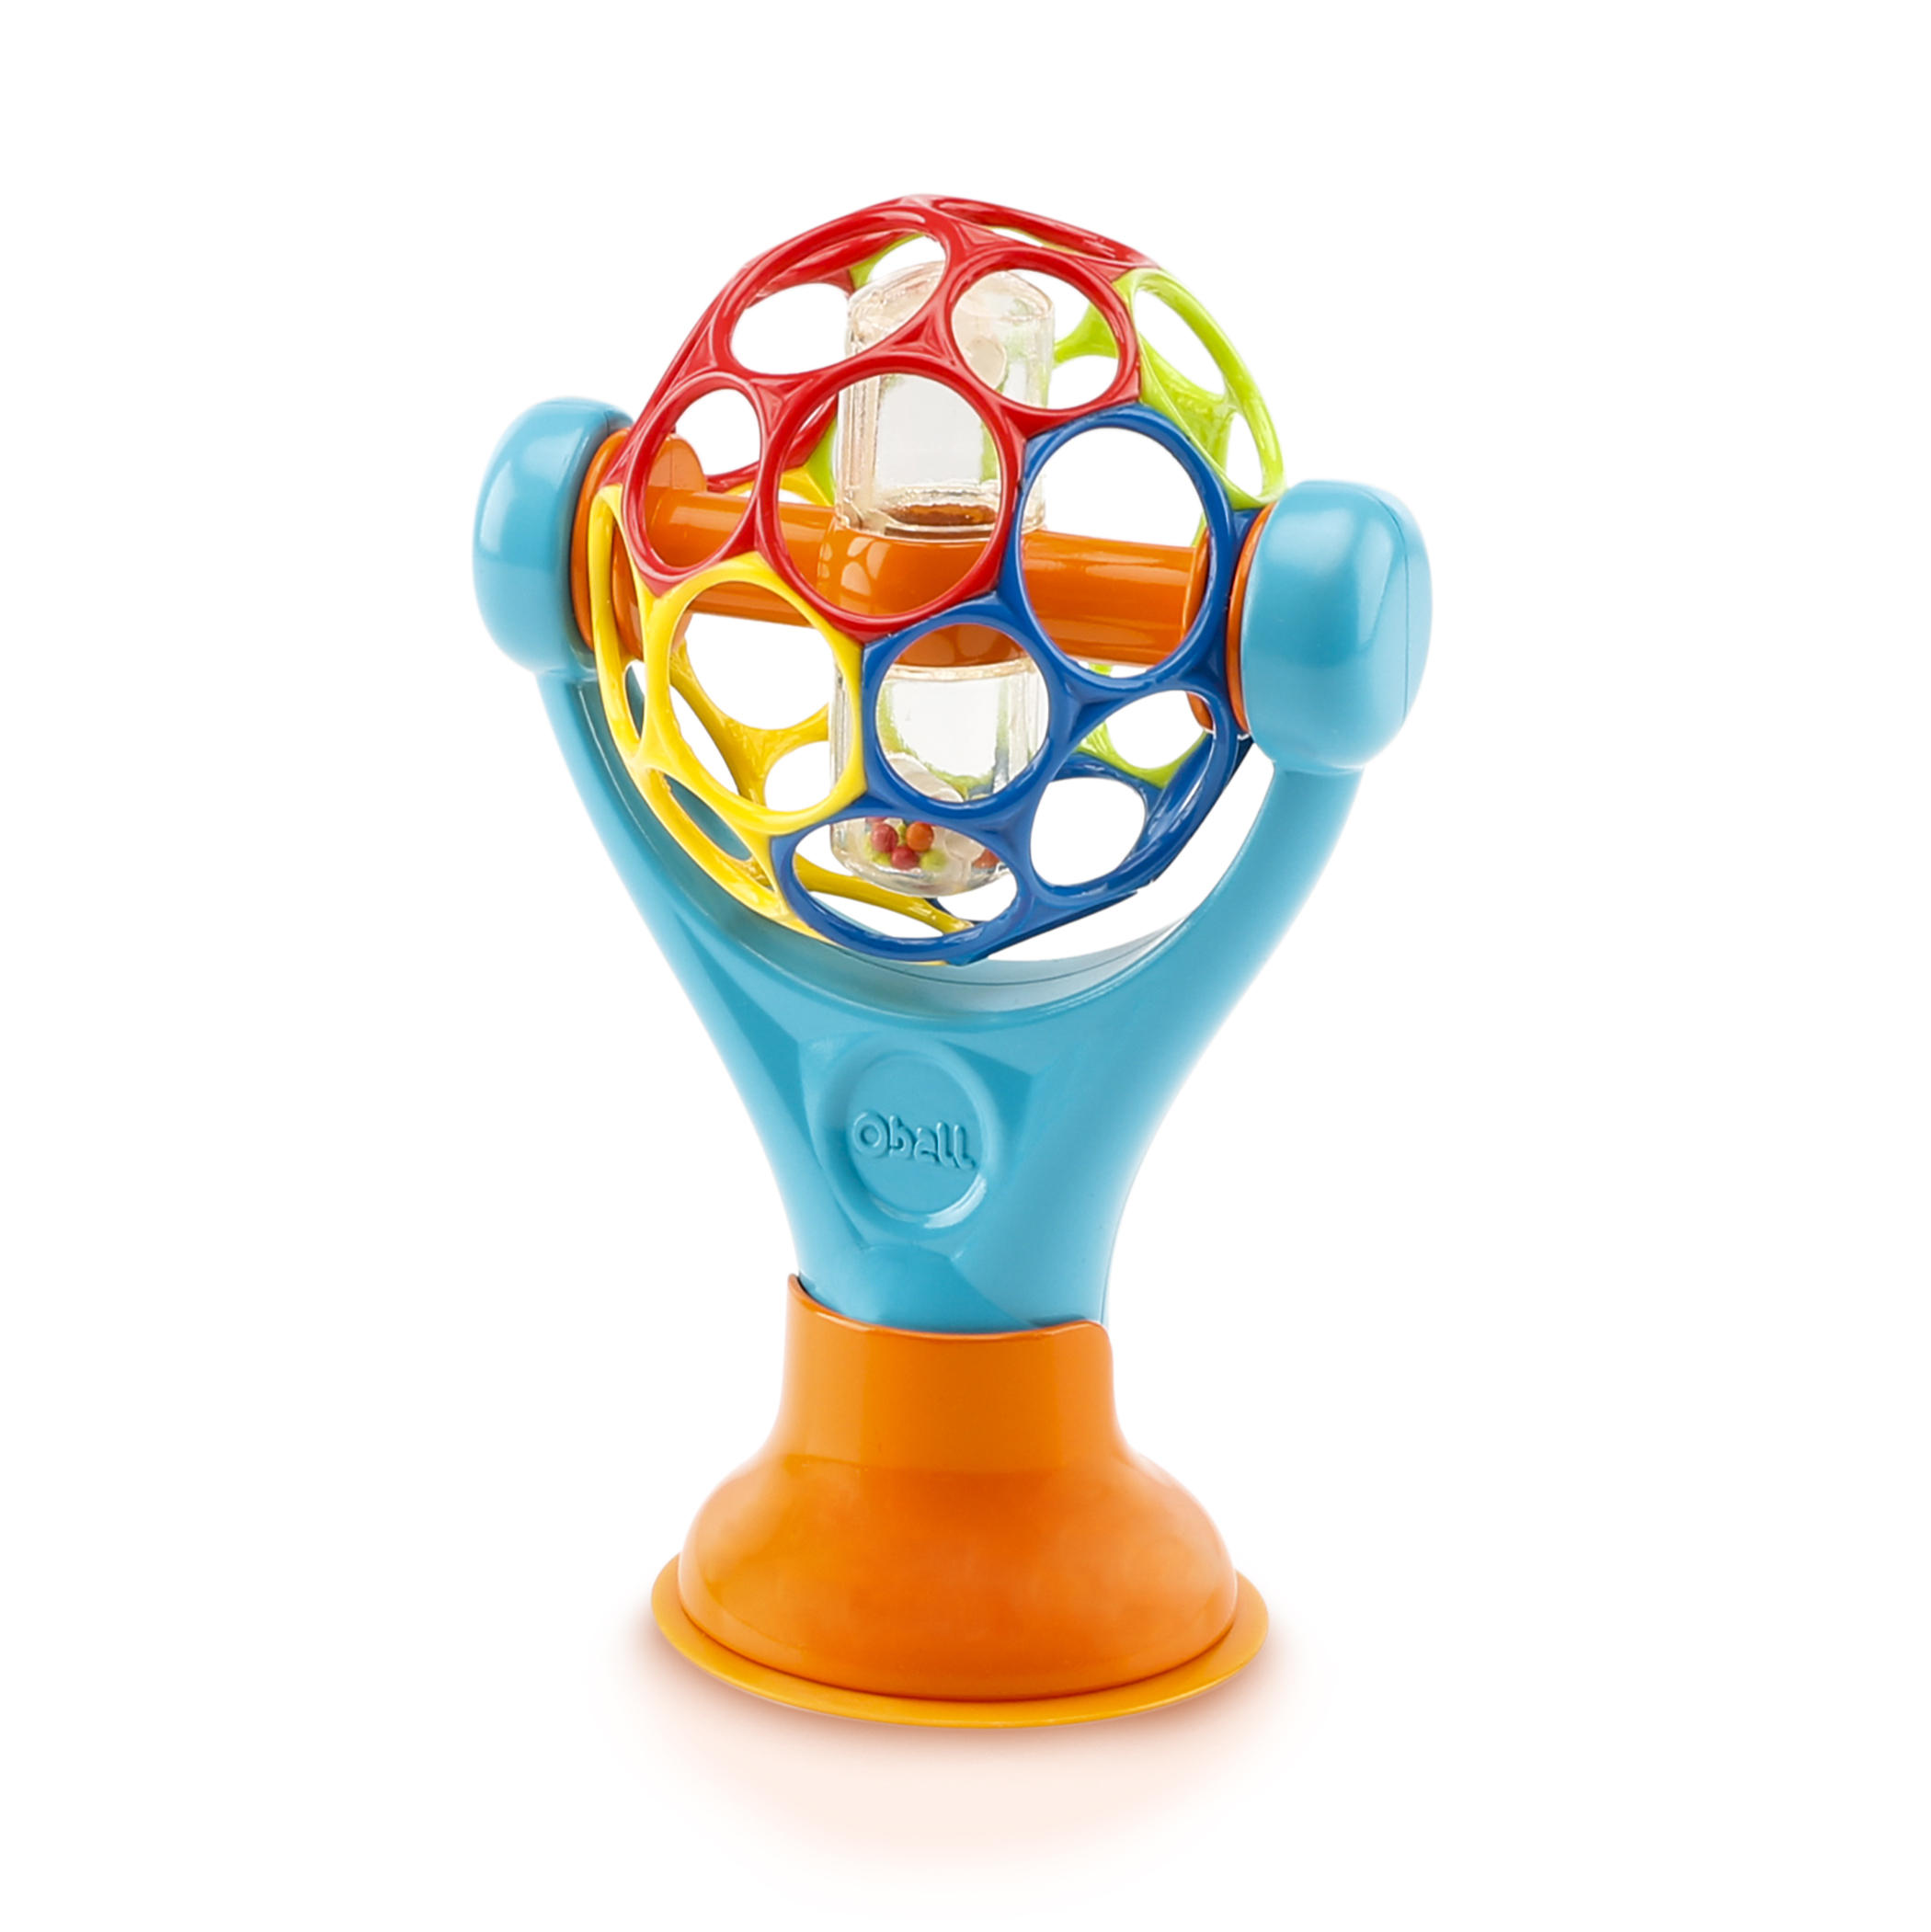 Oball Grip & Play Suction Toy